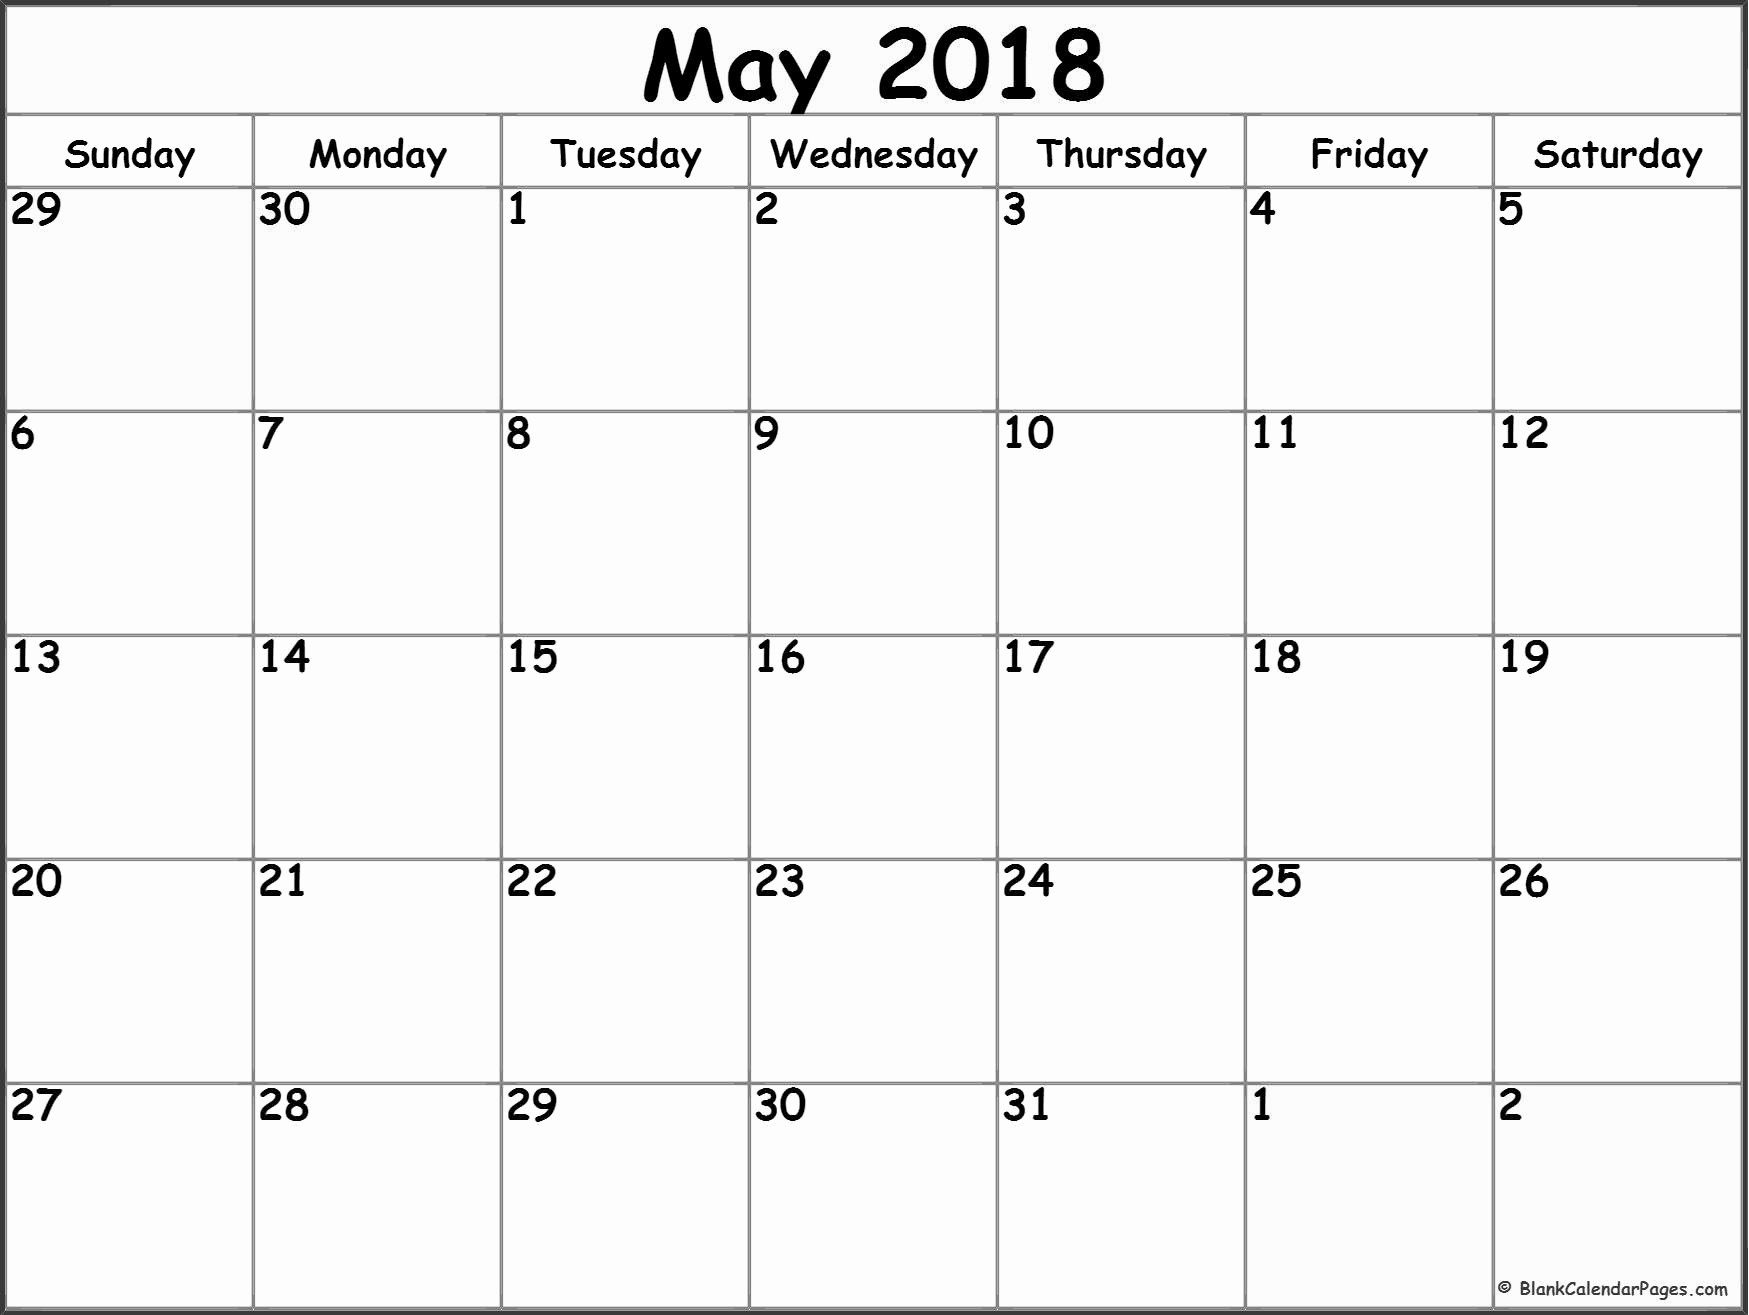 Blank May 2018 Calendar Printable Unique May 2018 Blank Calendar Collection